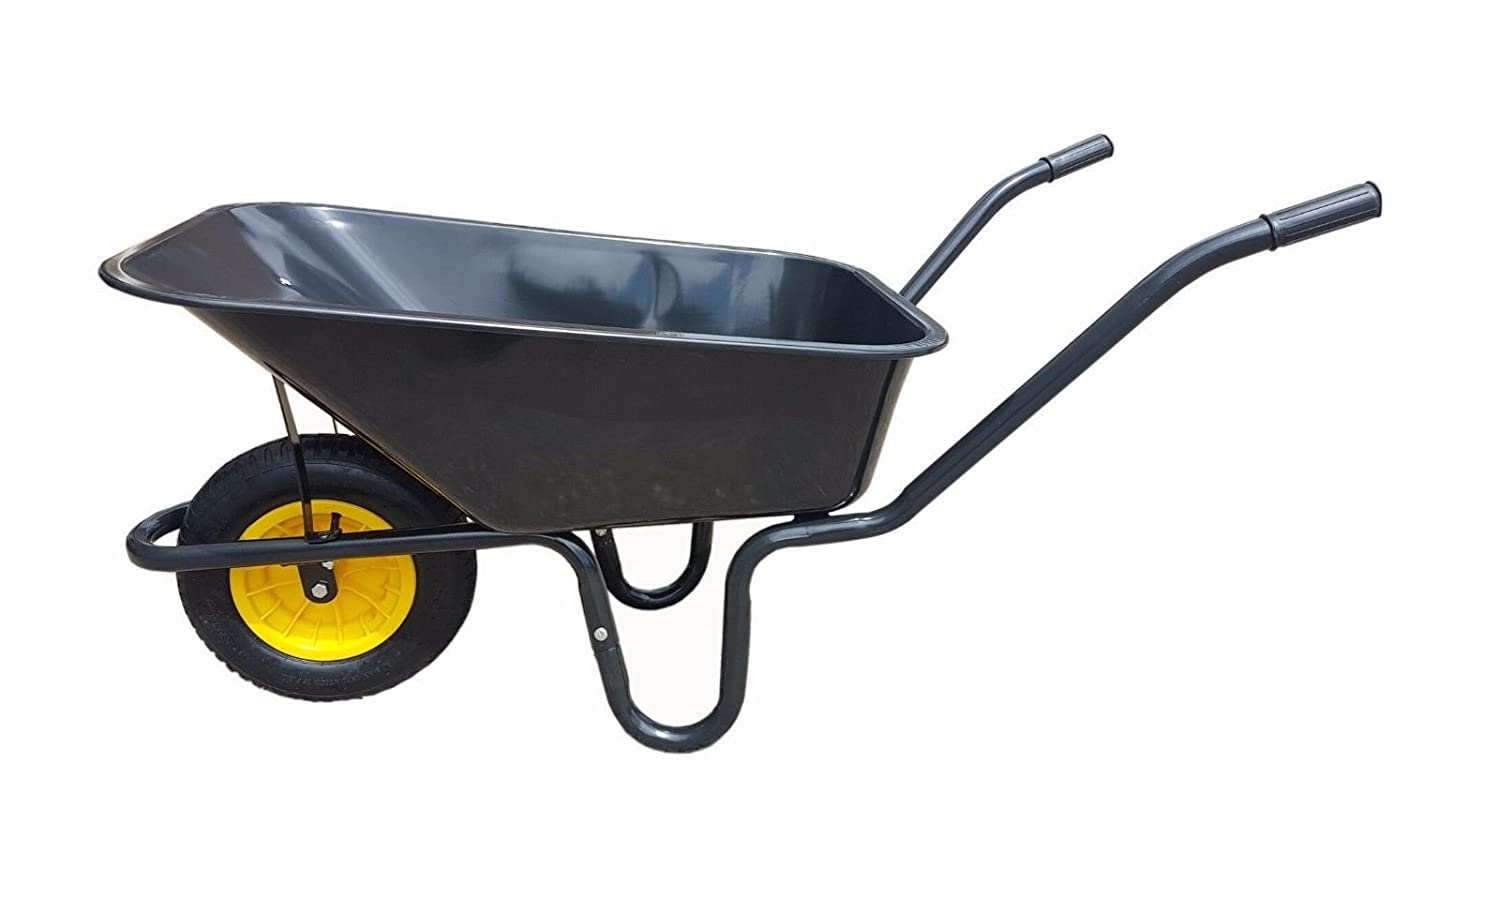 BARROW 110L DOUBLE WHEELBARROW WITH PUNCTURE PROOF WHEEL /& LIME GREEN PLASTIC BODY